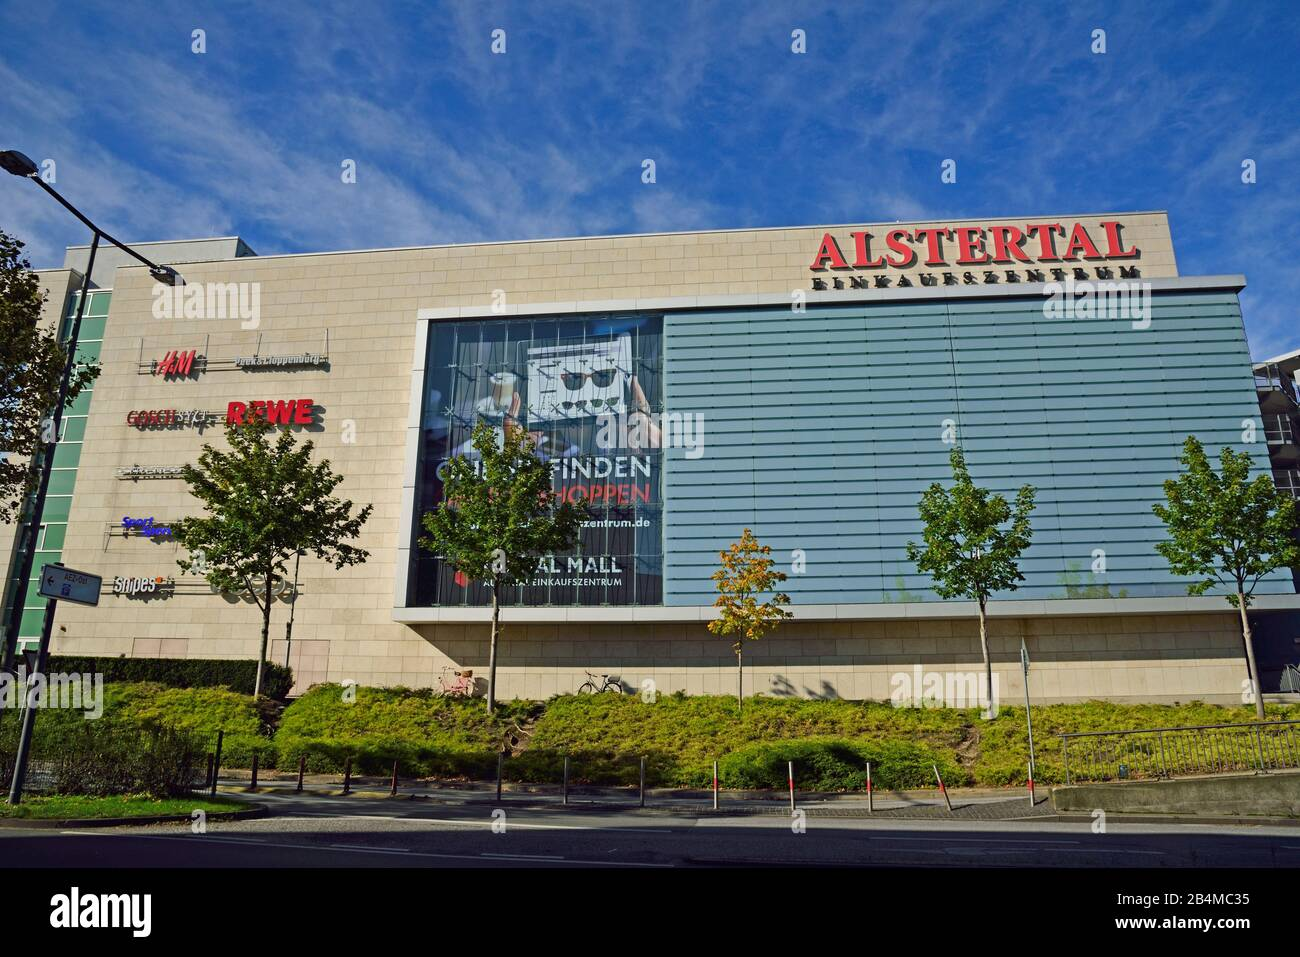 Alstertal High Resolution Stock Photography And Images Alamy